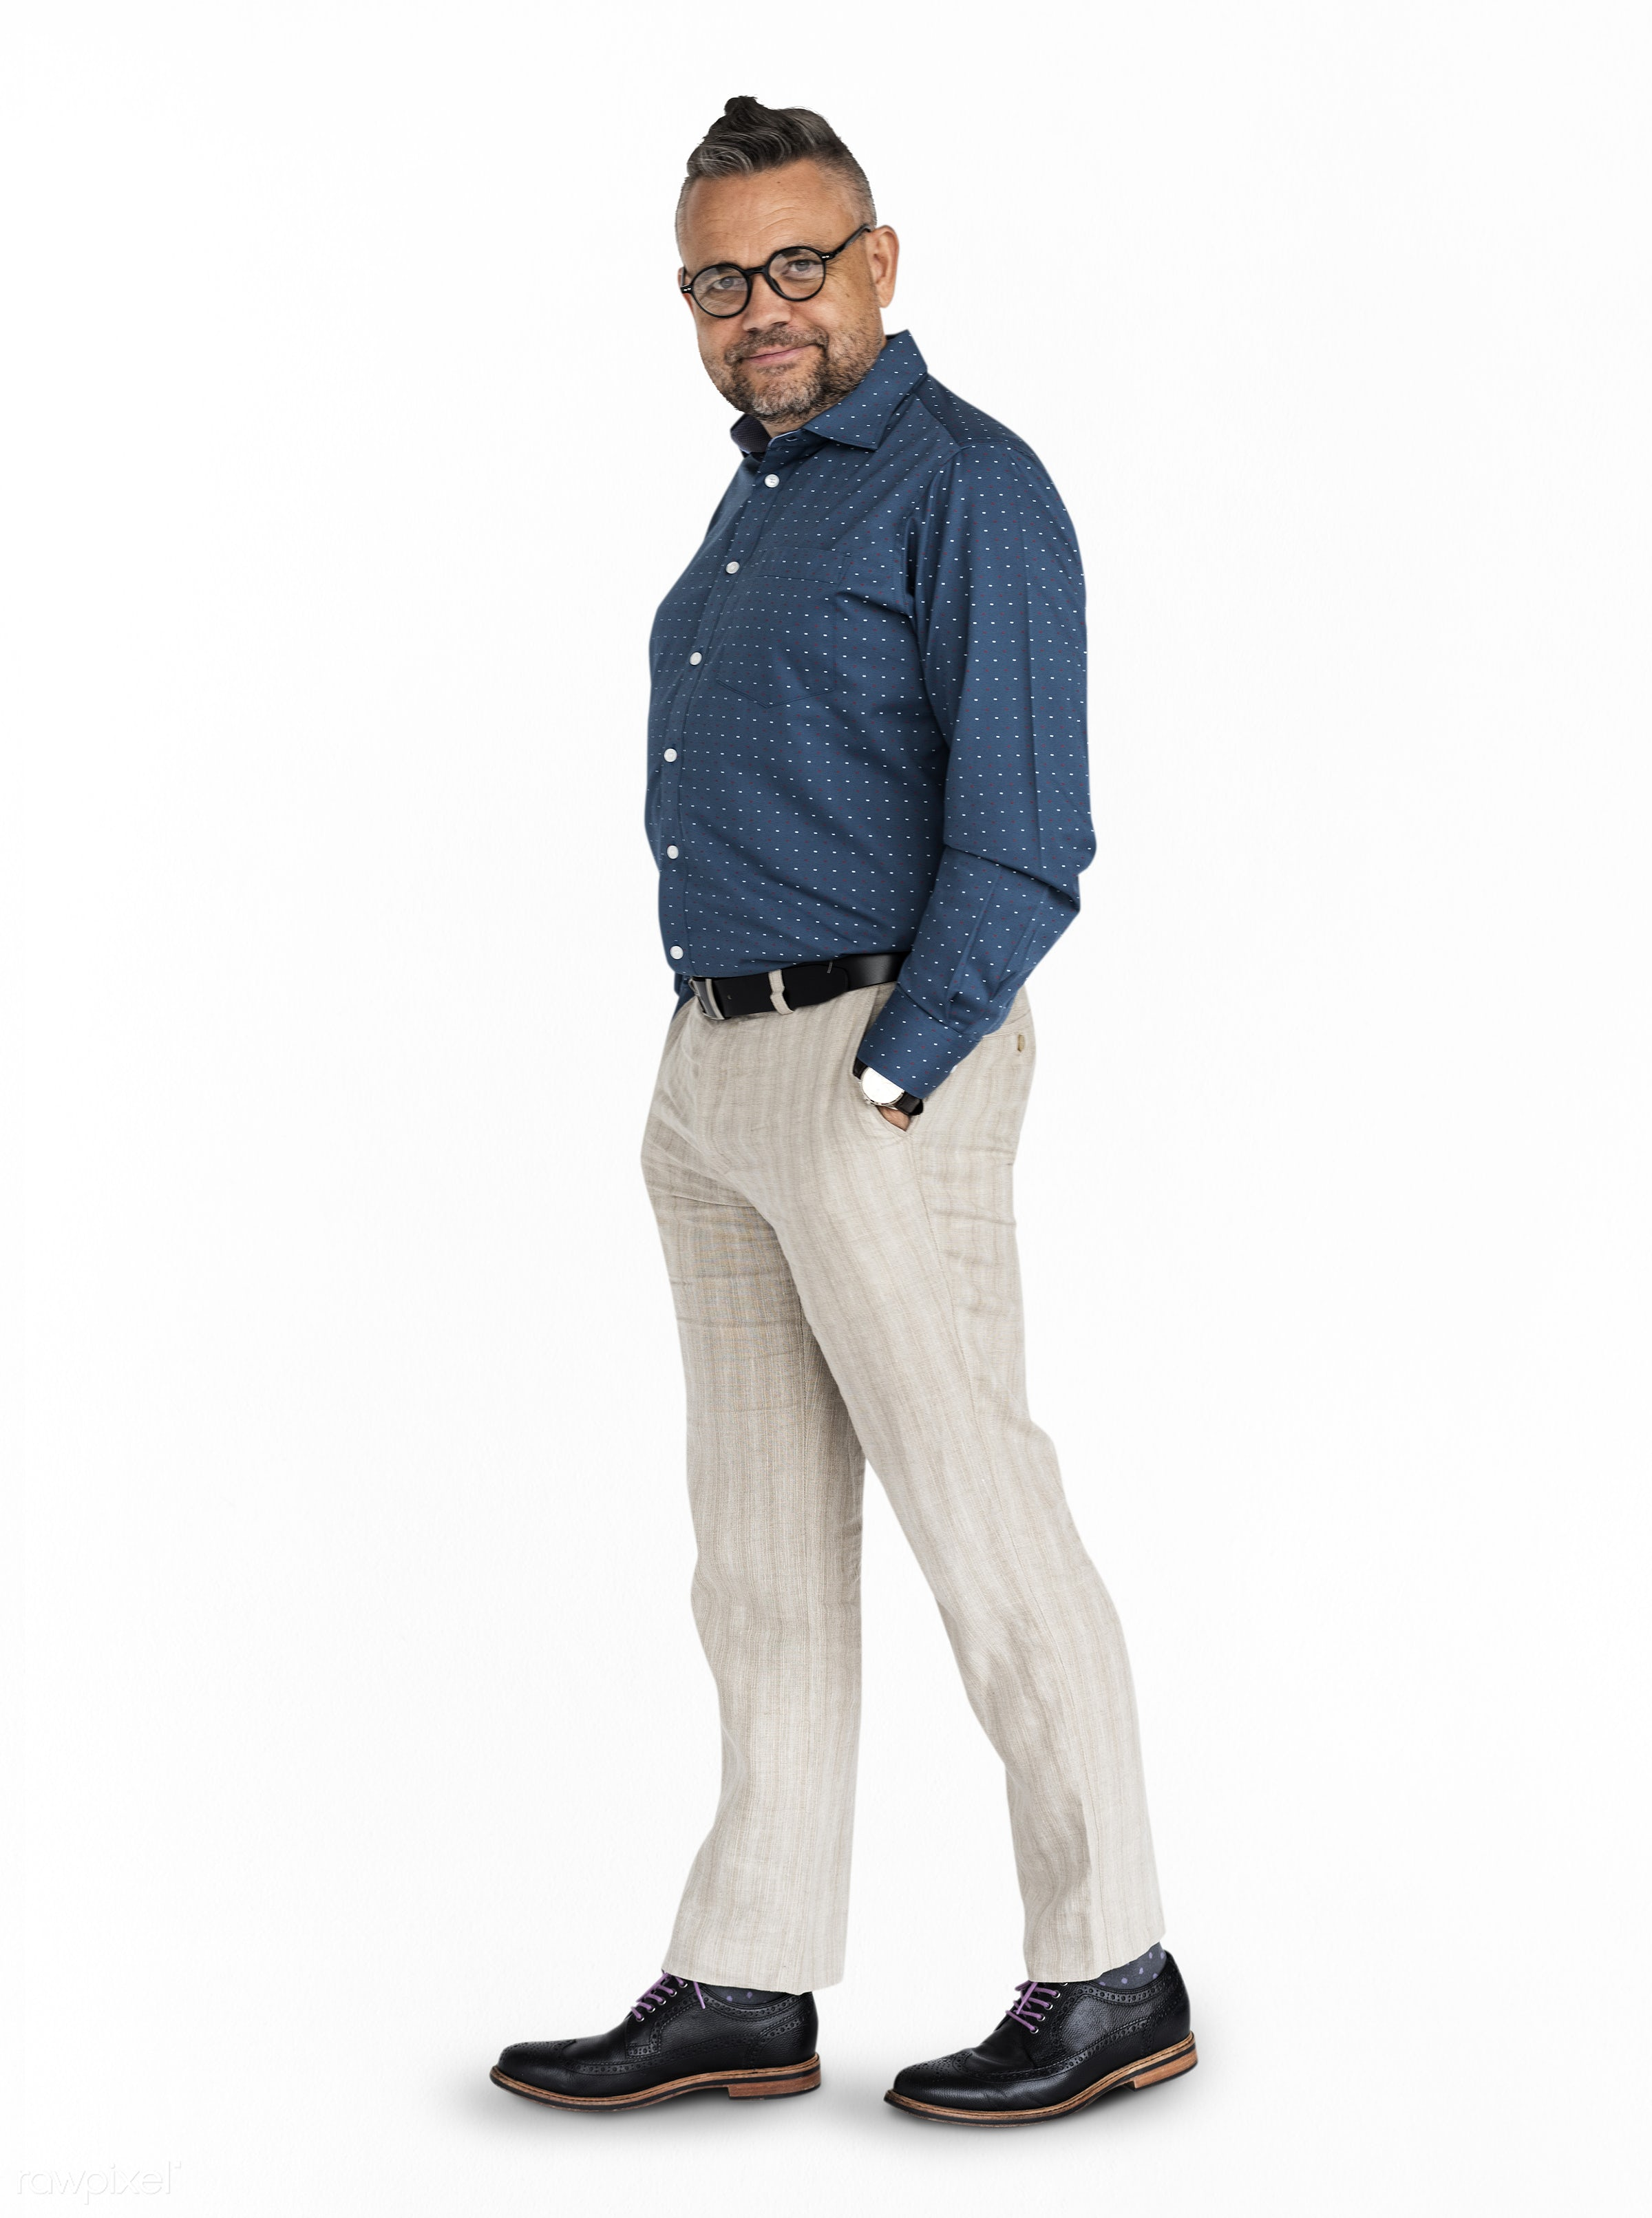 Caucasian Man Posing Cheerful - expression, studio, casual attire, person, isolated on white, joy, people, caucasian, pose,...